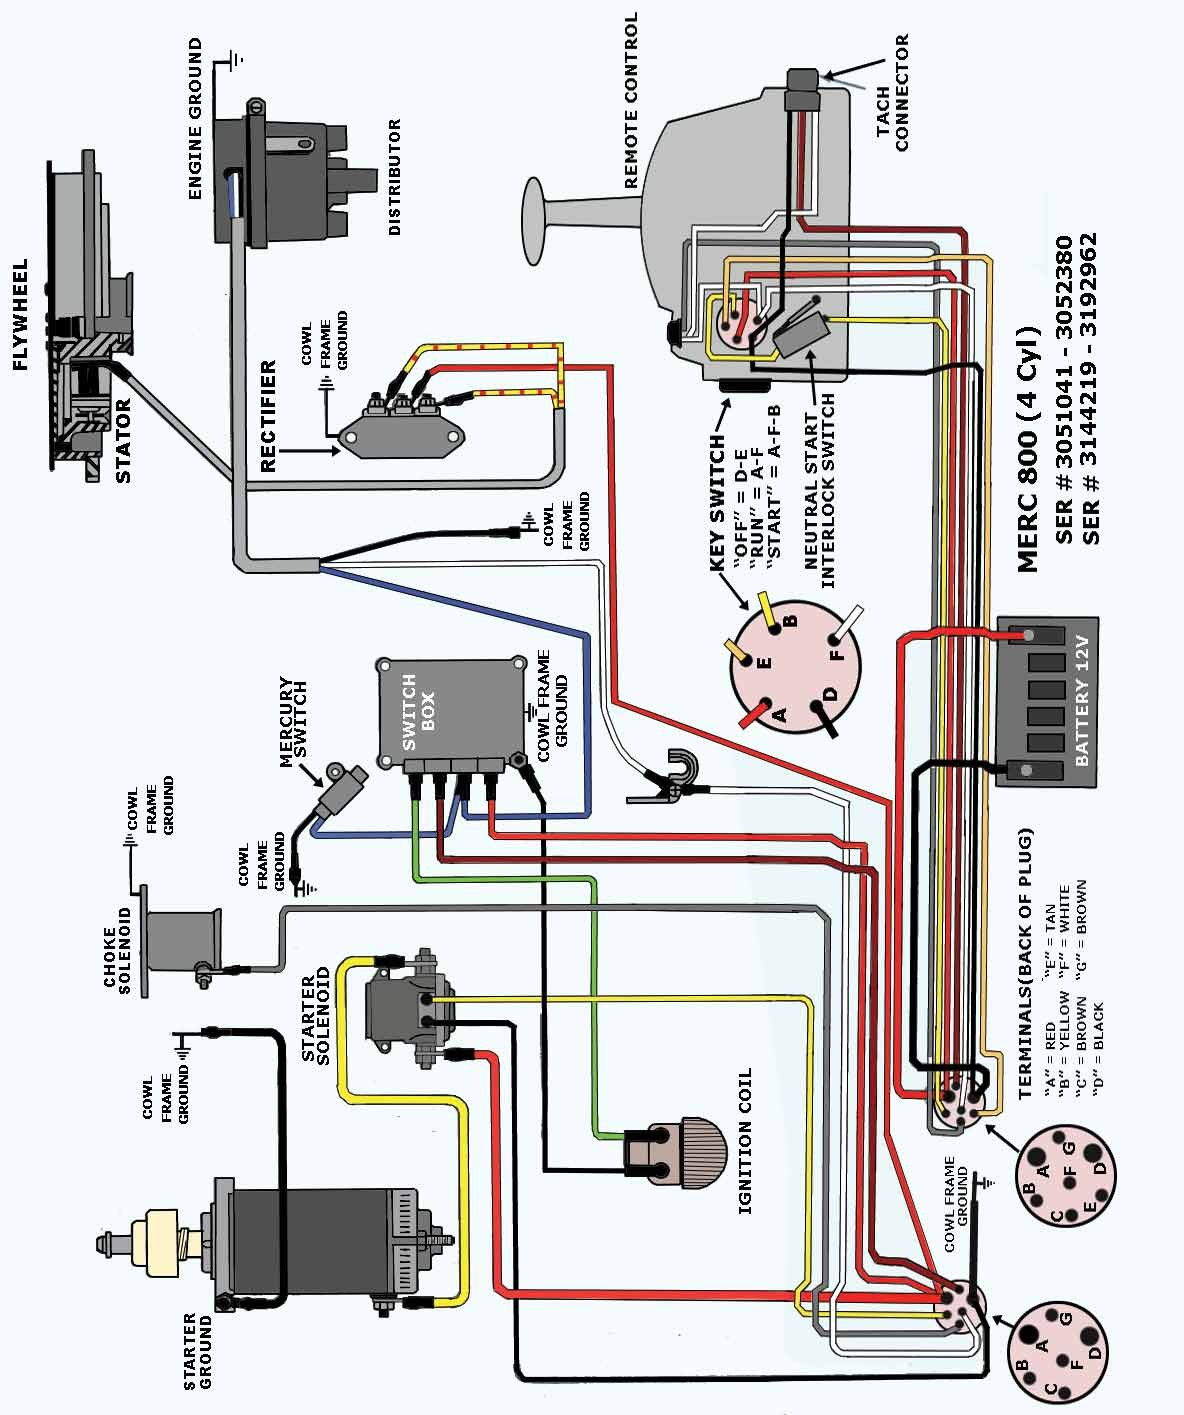 hight resolution of thunderbolt v ignition wiring diagram basic guide wiring diagram u2022 4 3 mercruiser